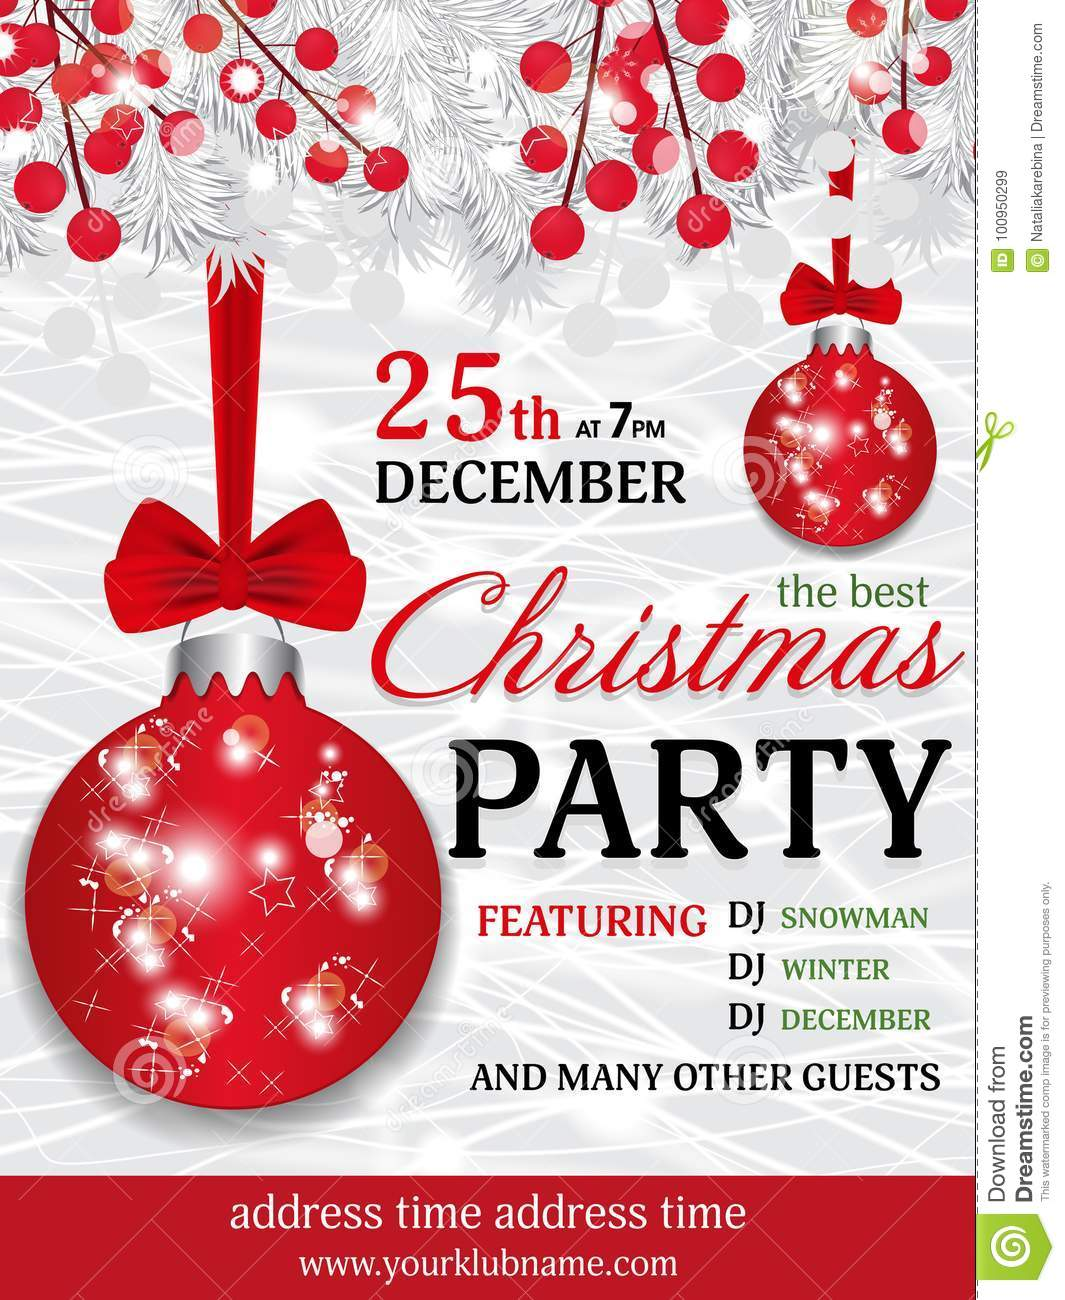 Christmas Party Invitation Template Background With Fir White Br